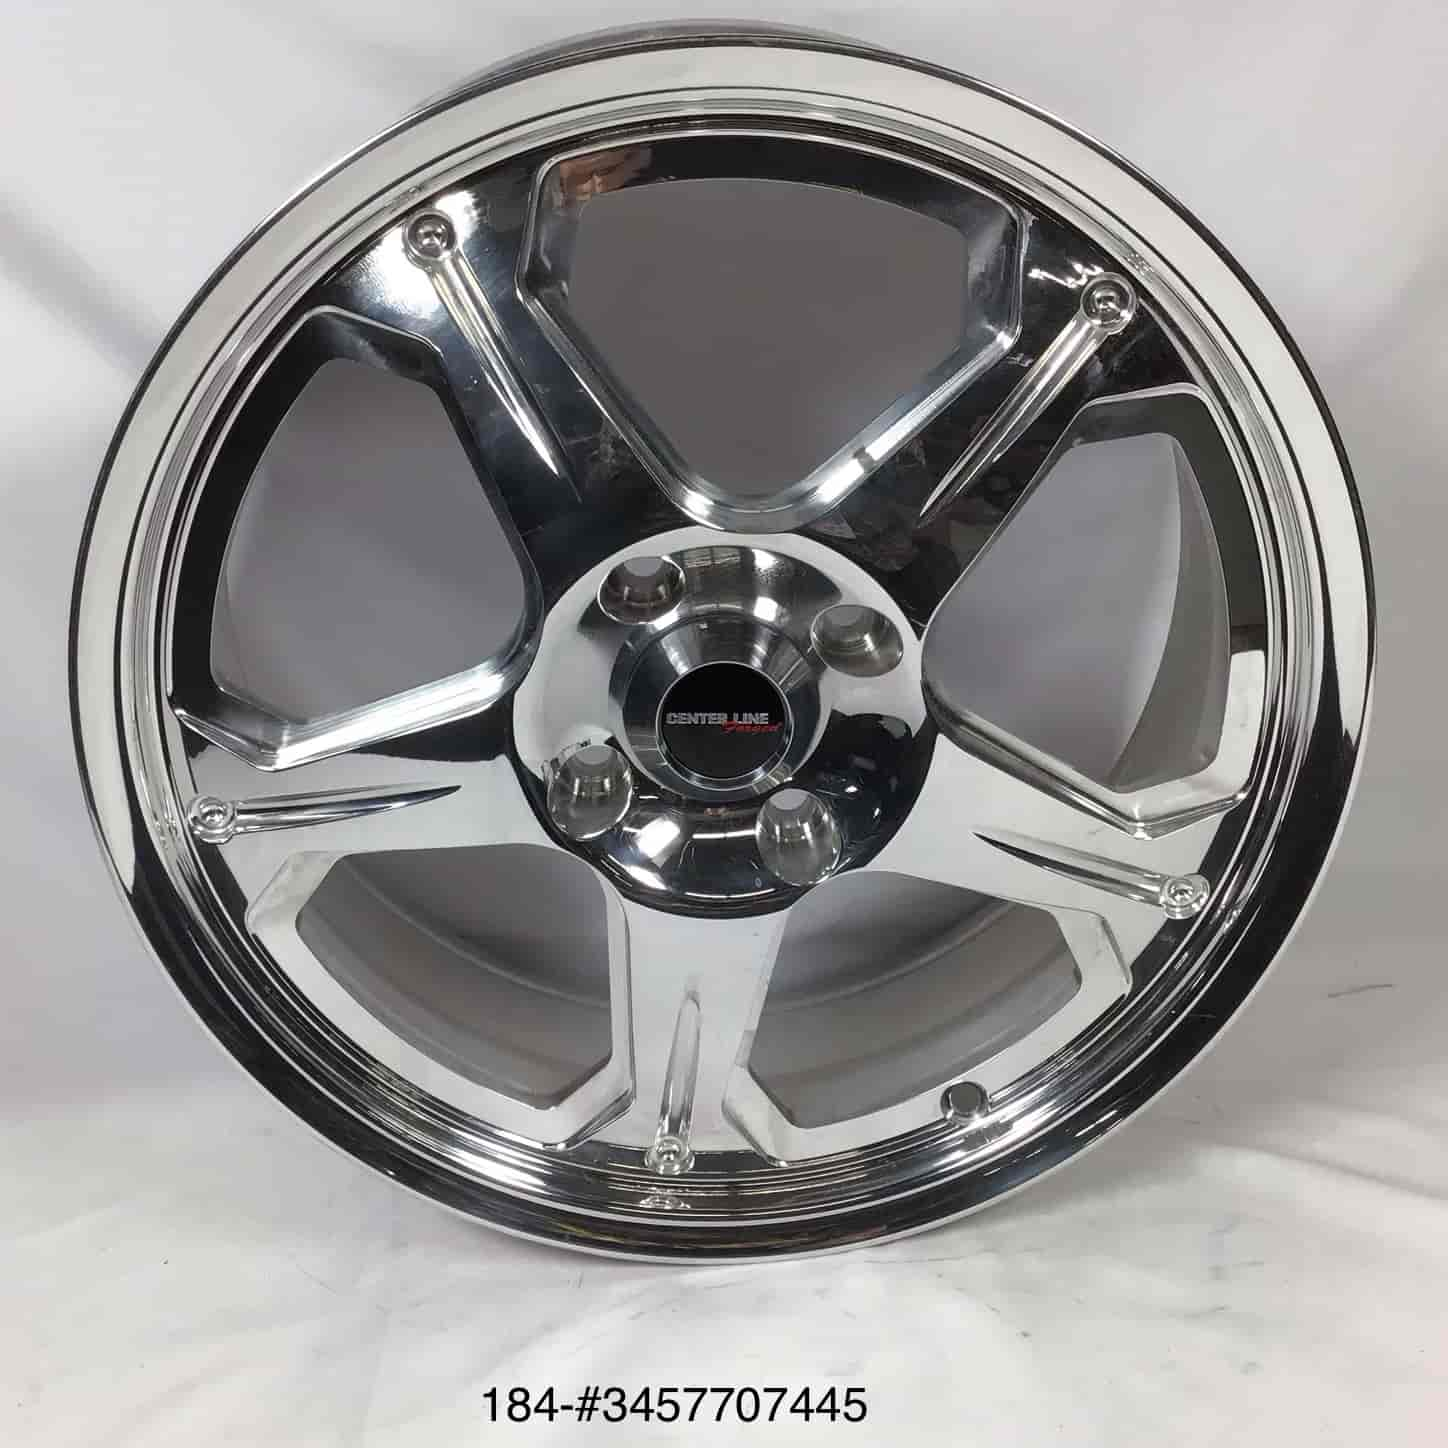 Center Line Wheels #3457707445